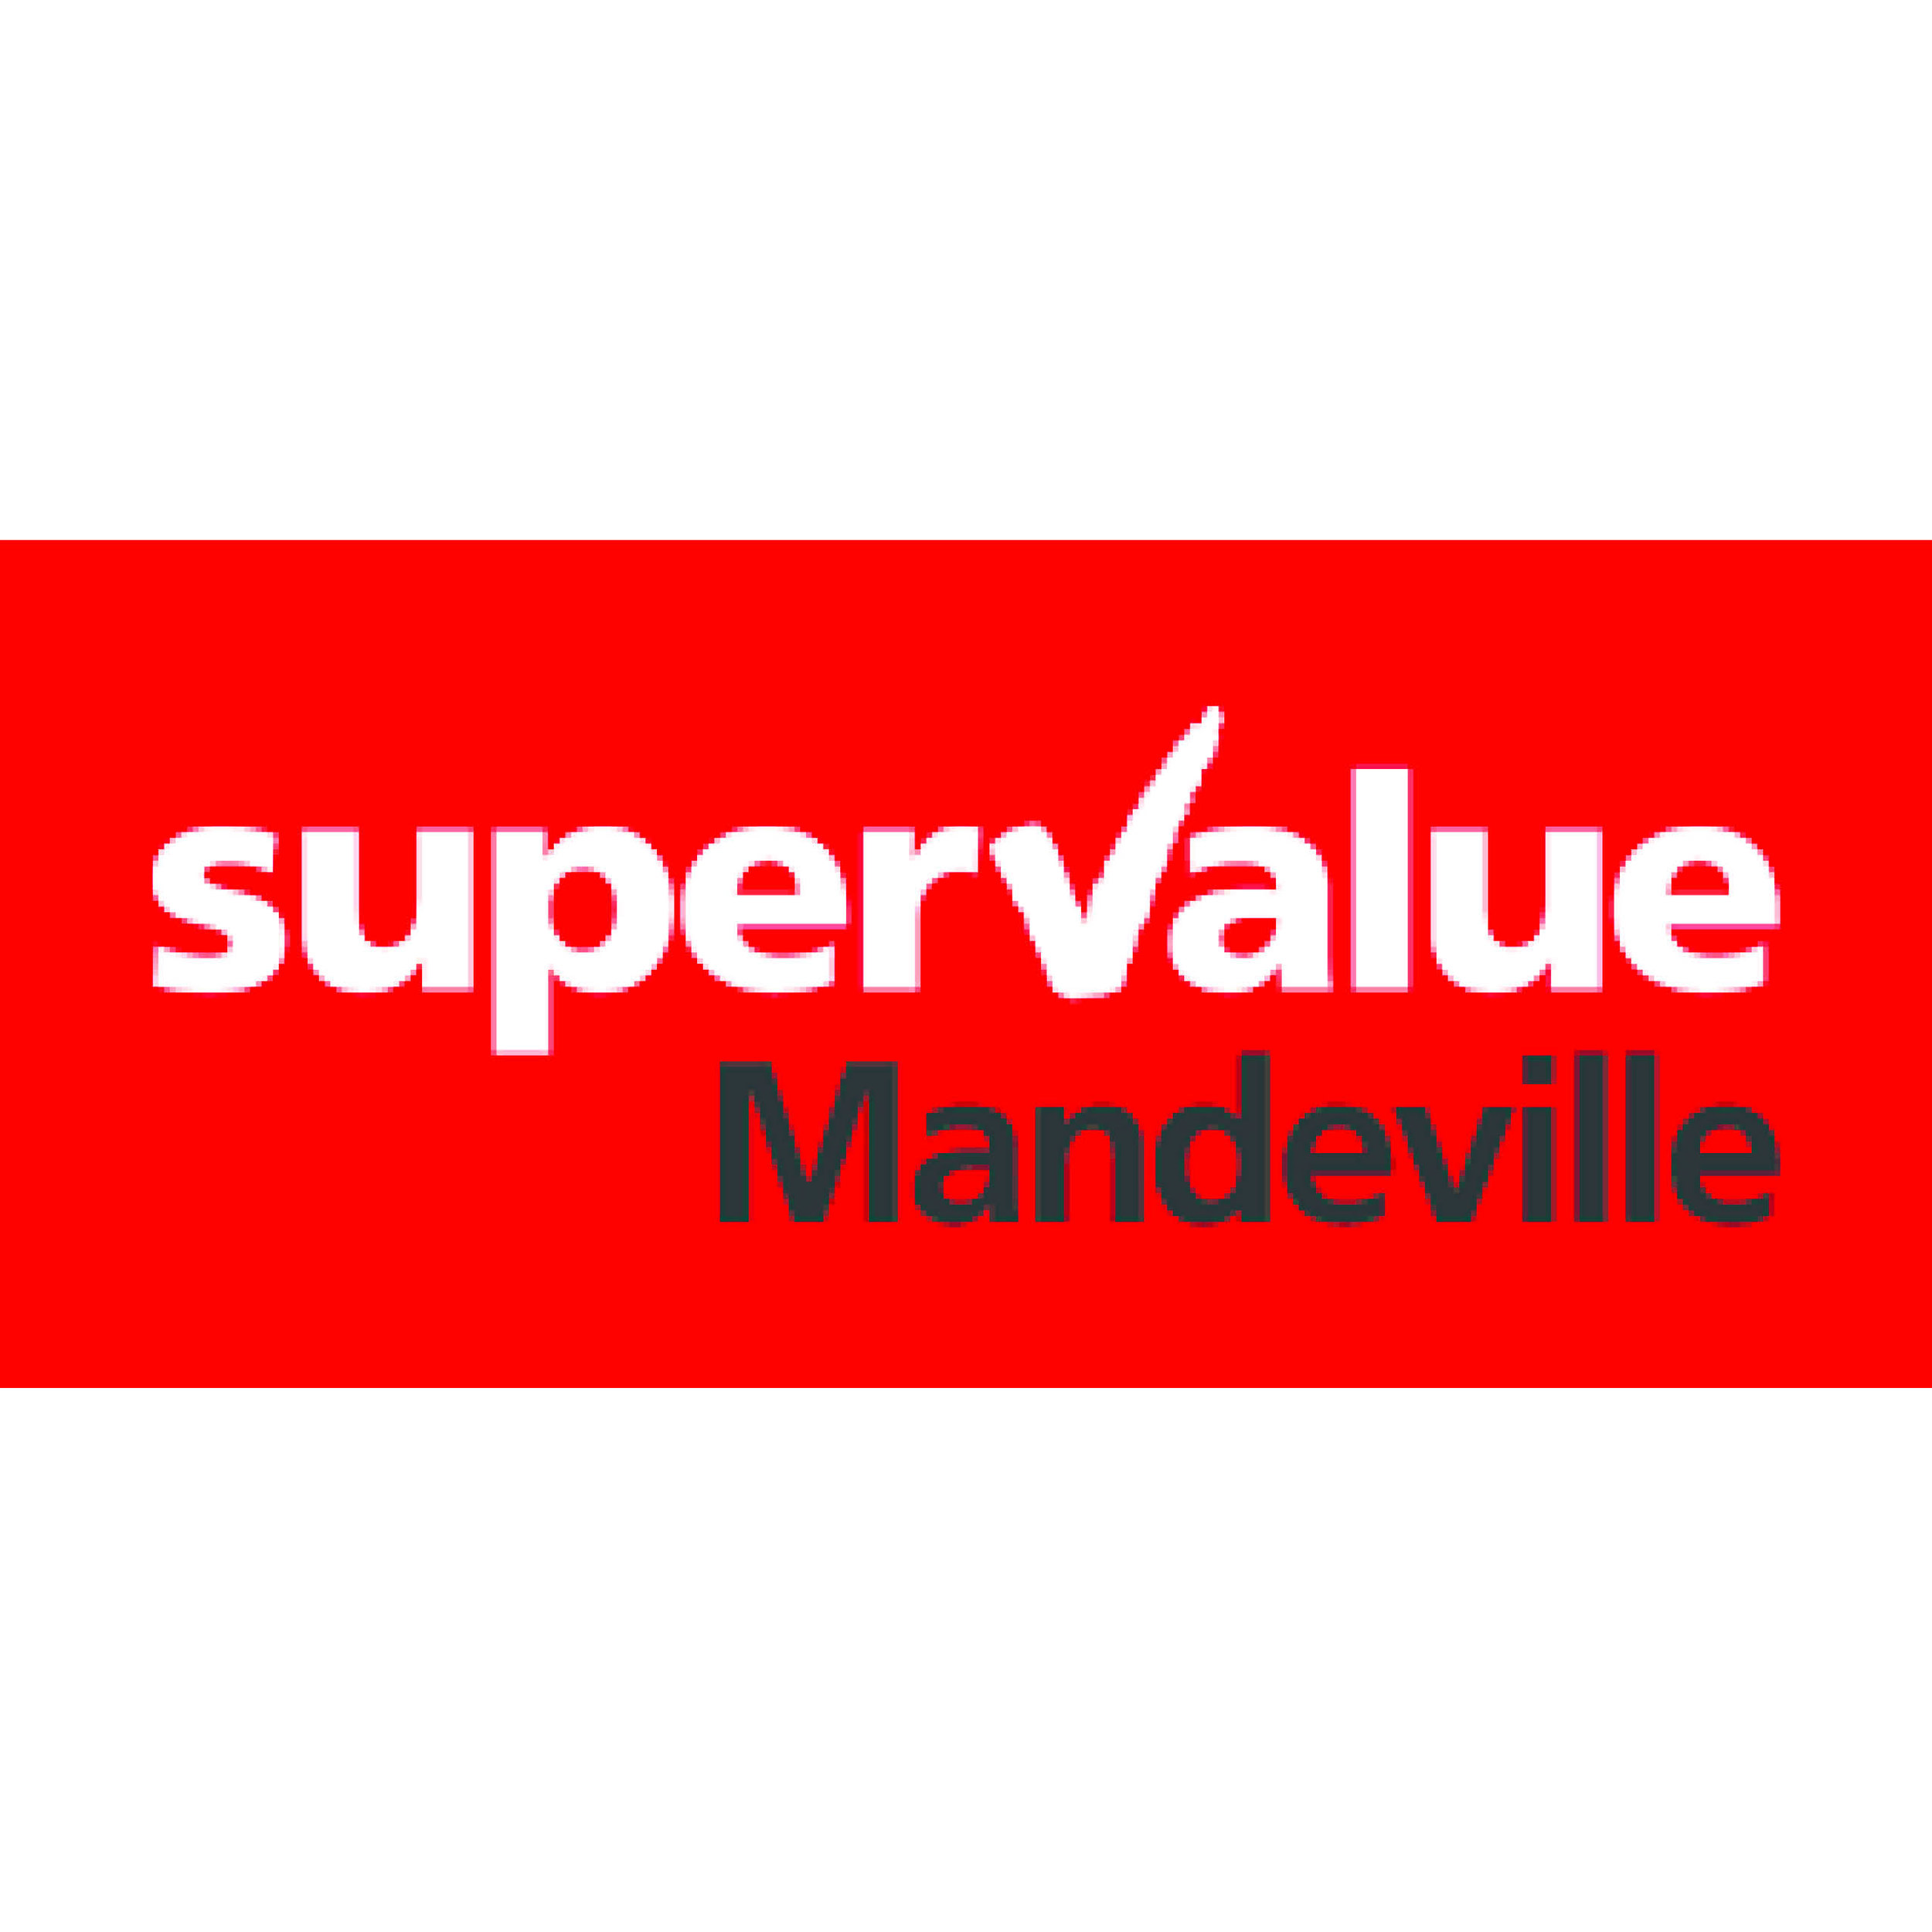 Supervalue Mandeville